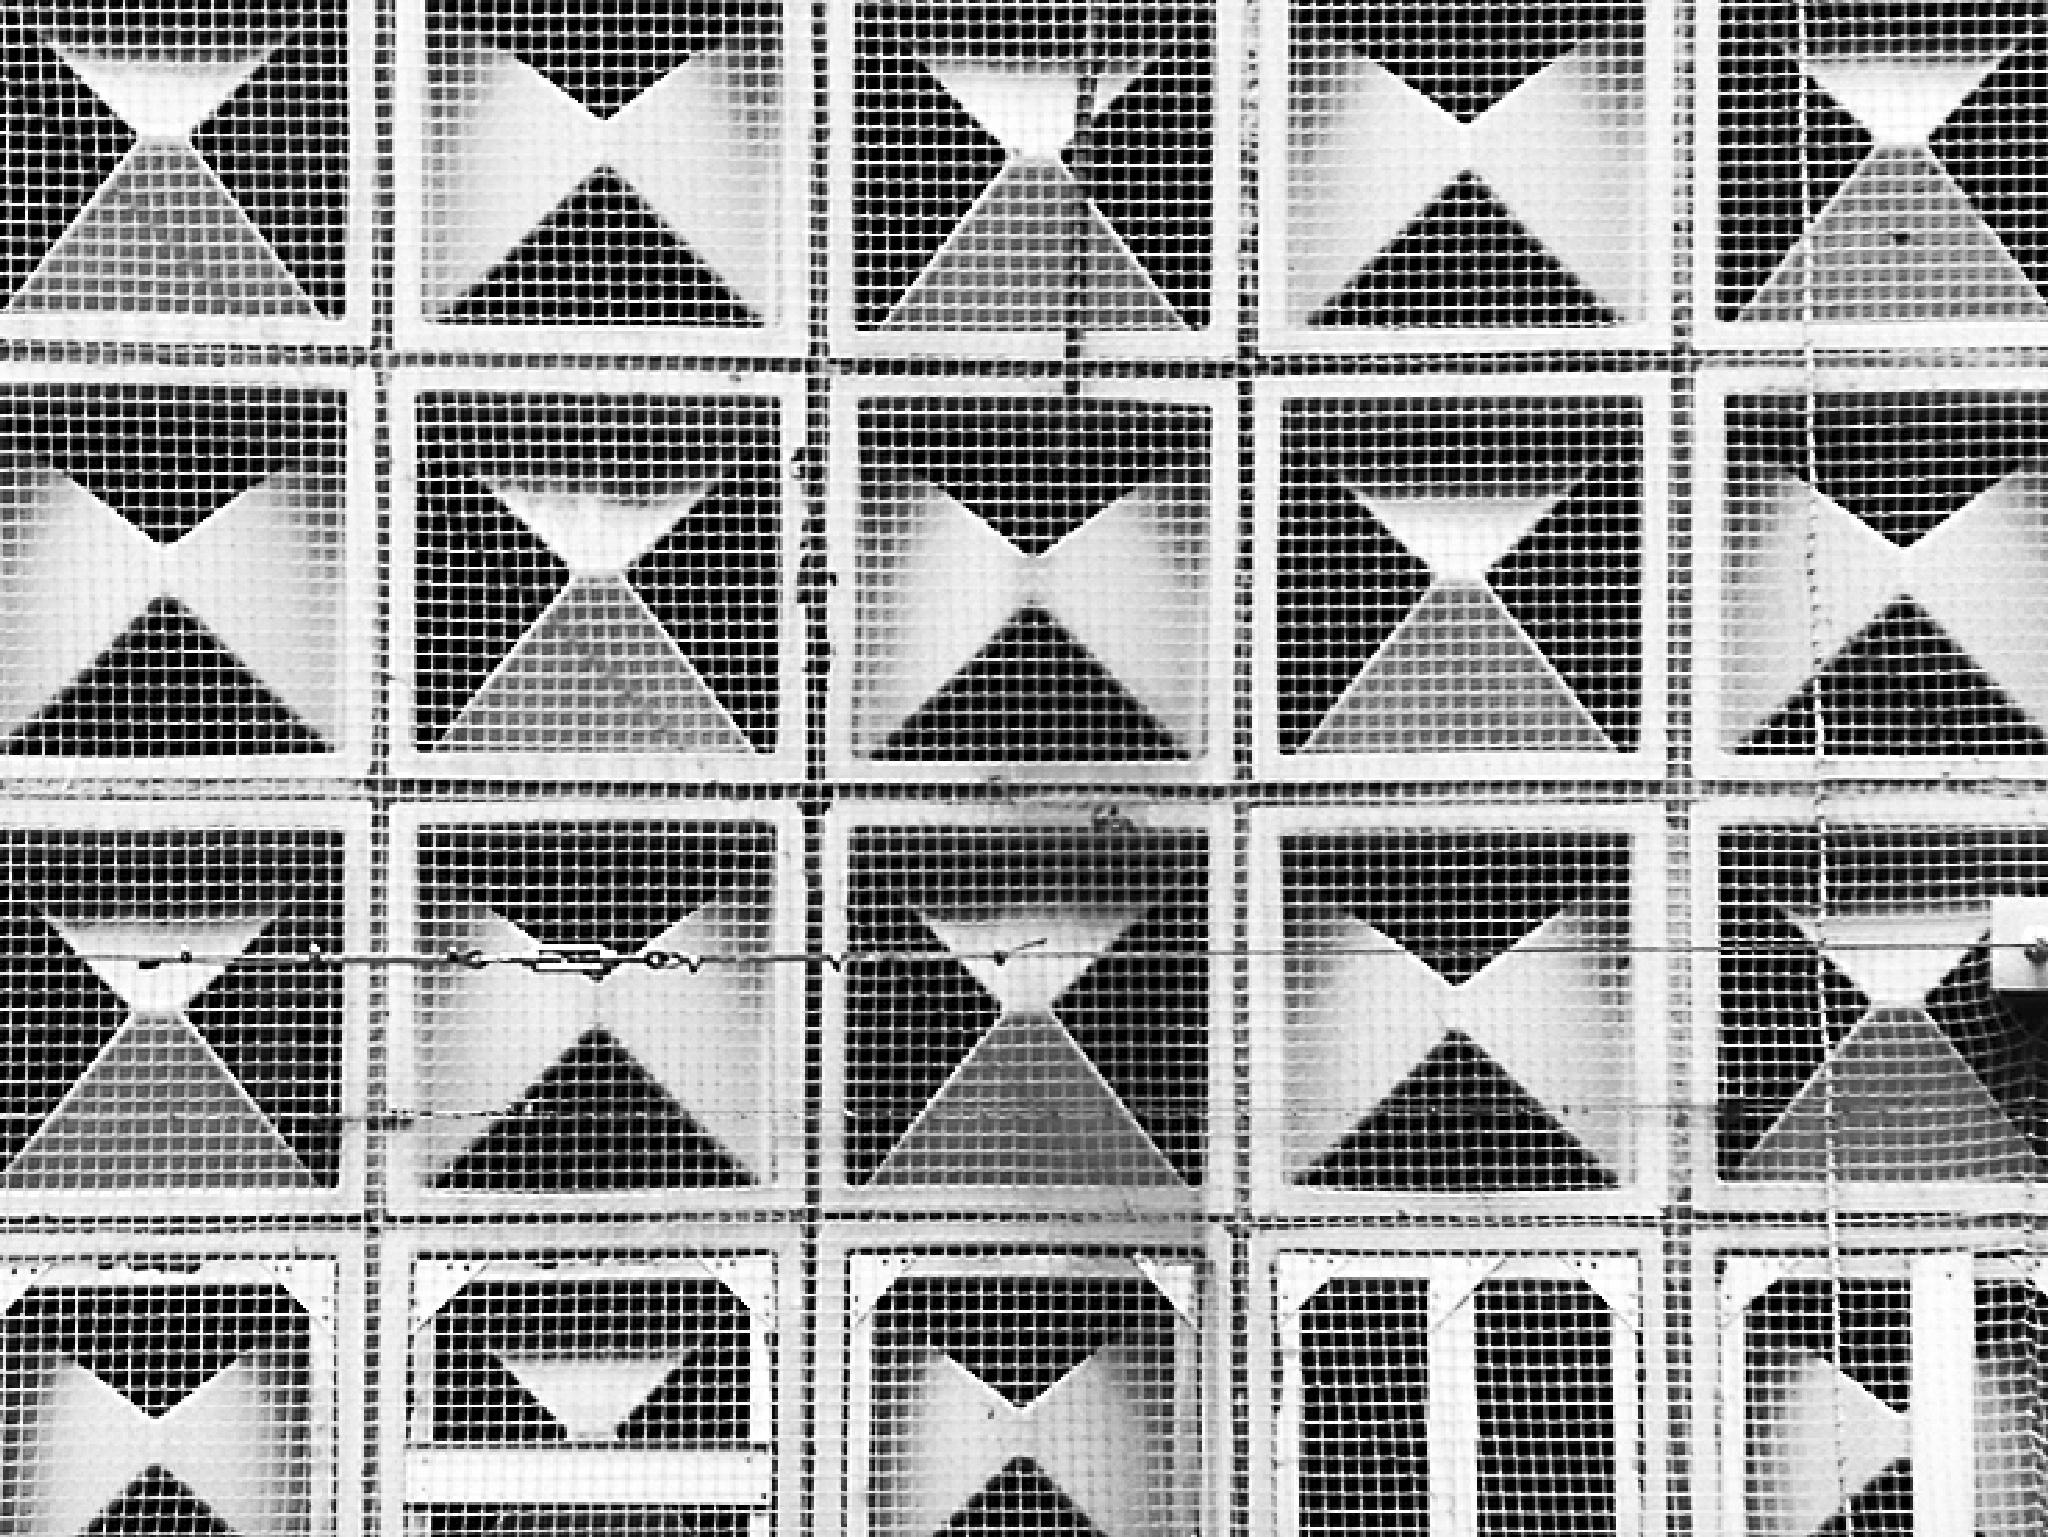 Abstract bw by Gernot Schwarz